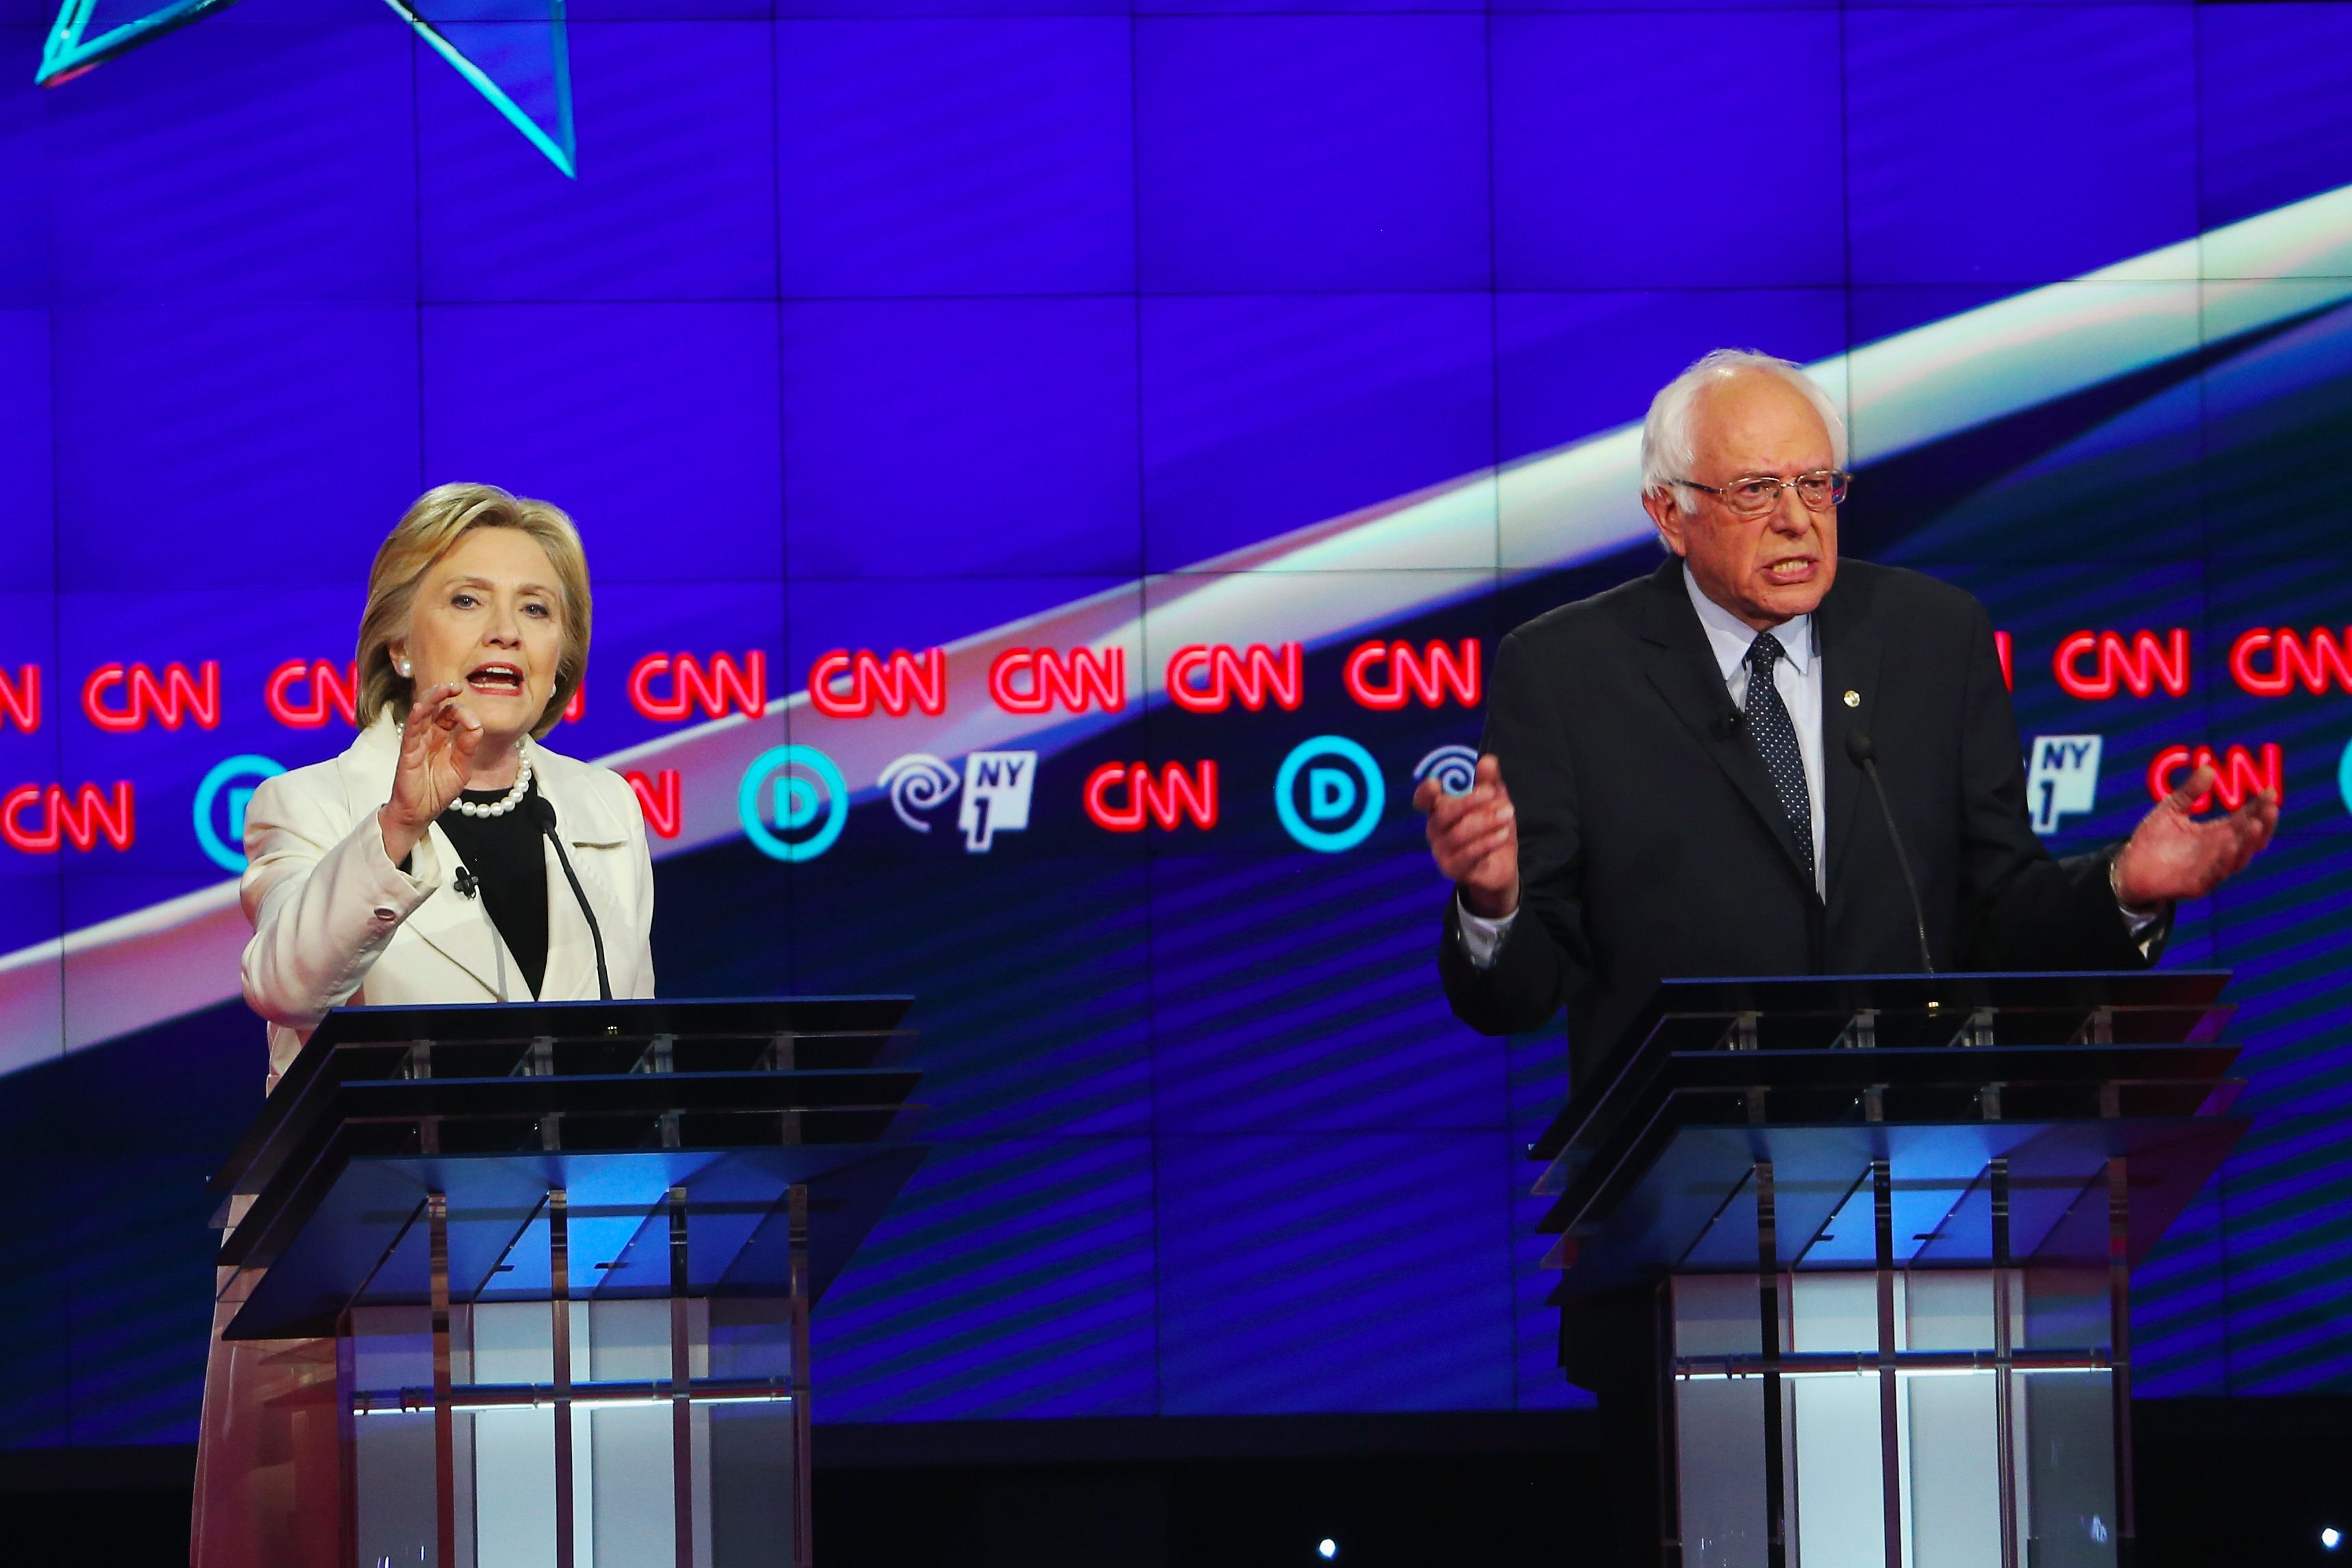 Hillary Clinton and Bernie Sanders during the the Democratic presidential debate in New York on April 14, 2016.